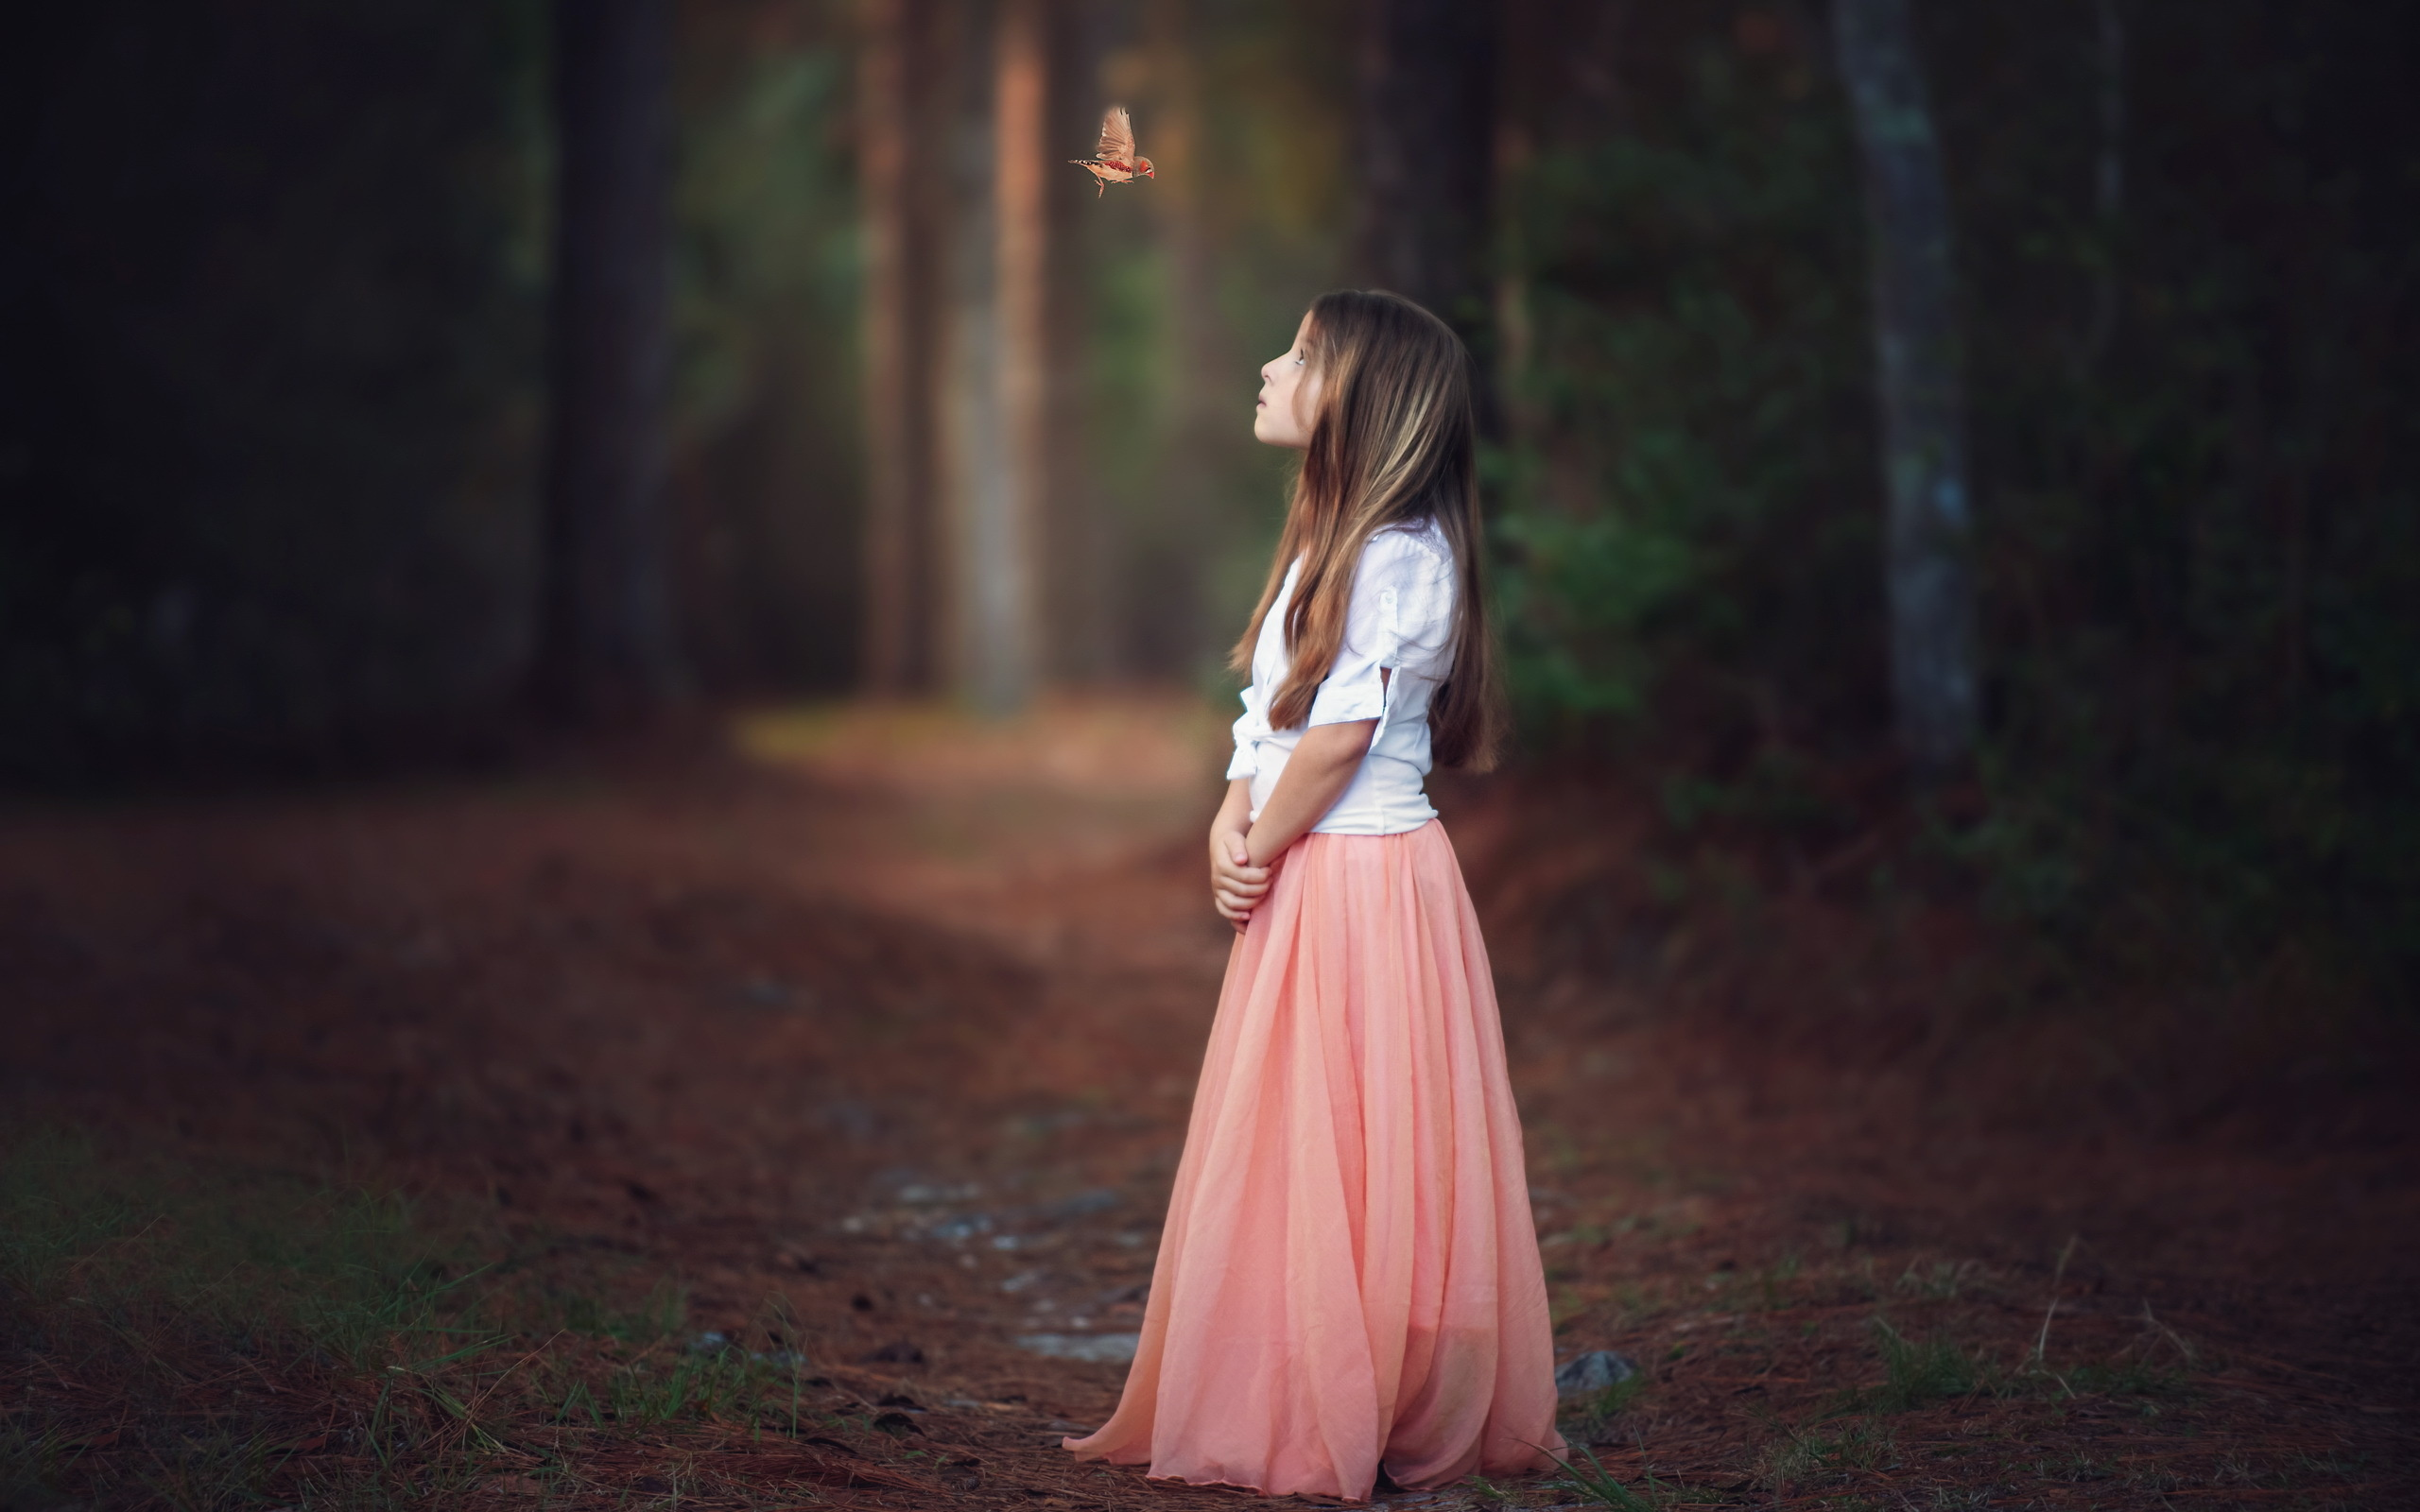 A Girl Sitting Alone Wallpapers Child A Girl Bird Forest Butterfly Mood Child Wallpaper